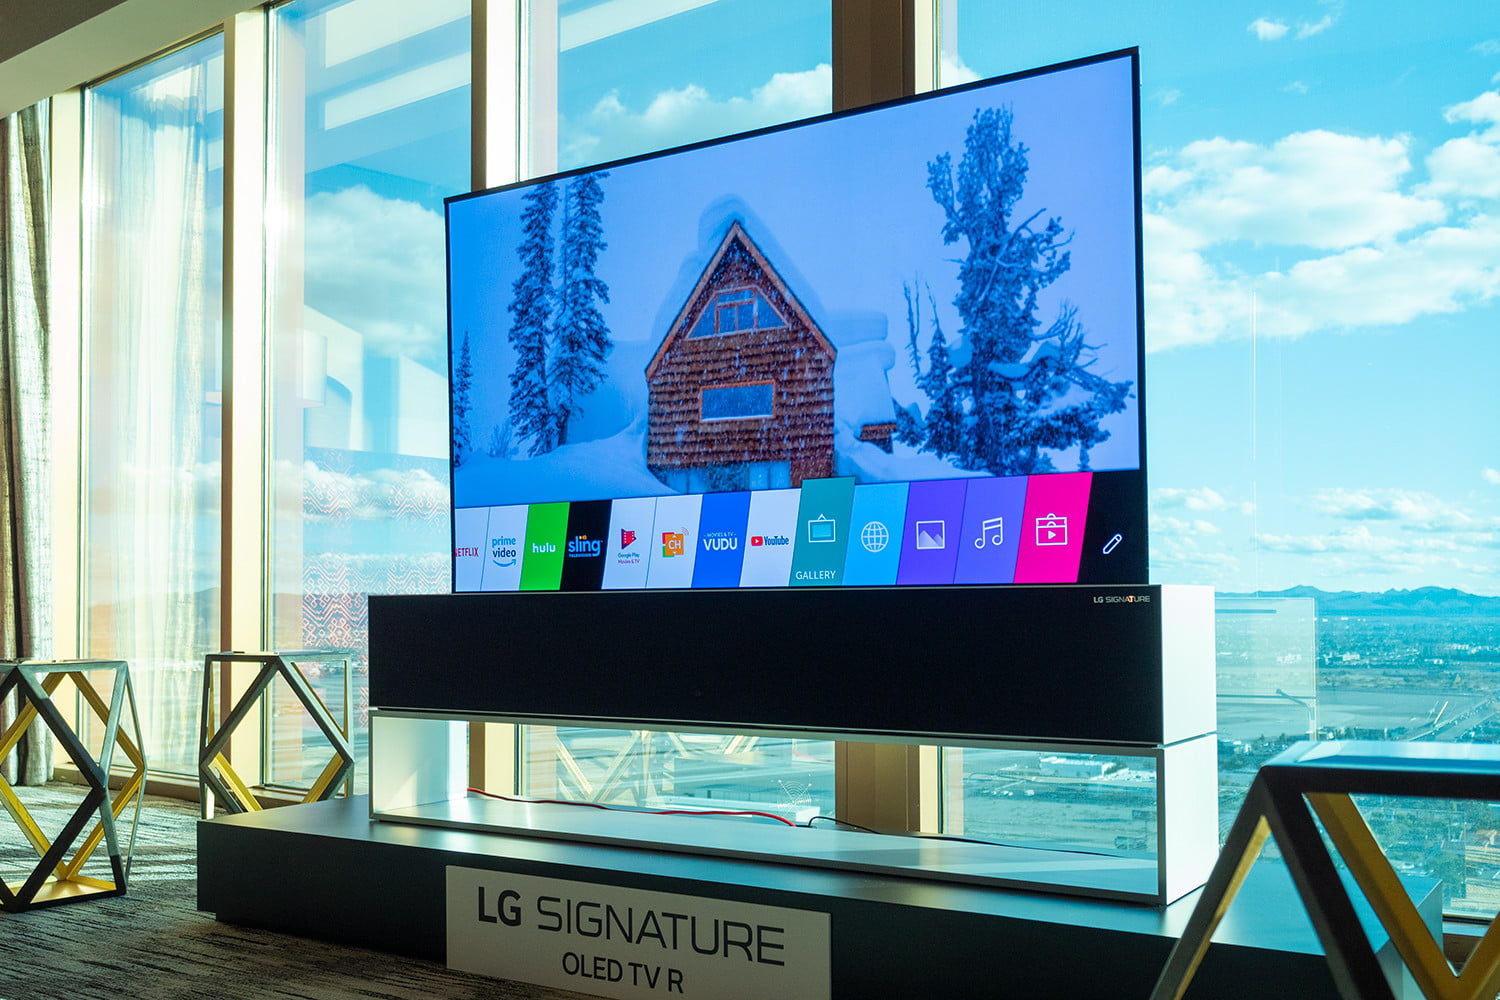 LG's roll-up OLED TV is every bit as magical as you've imagined